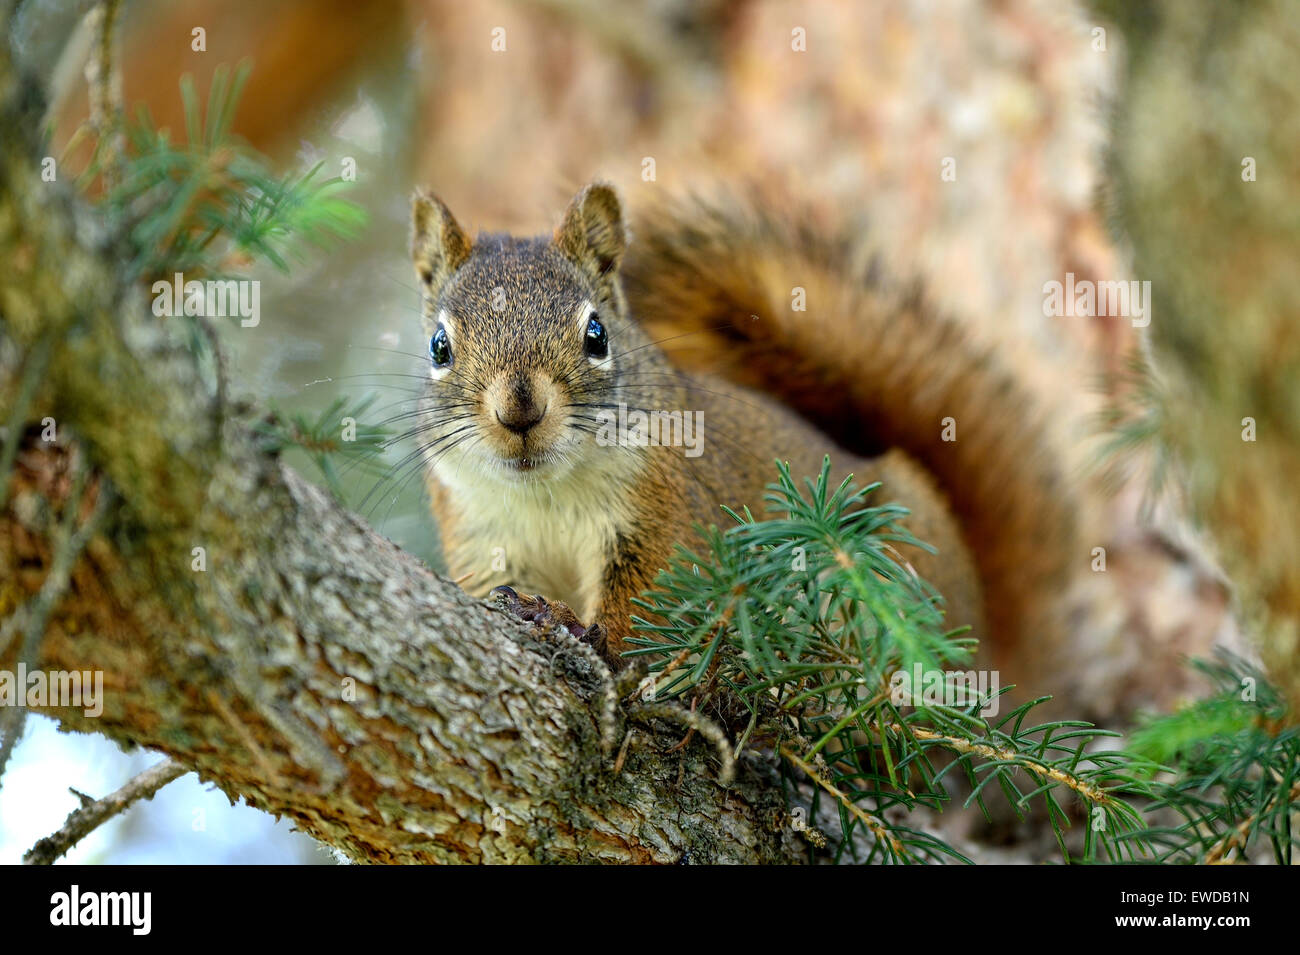 A wild Red Squirrel  Tamiasciurus hudsonicus, sitting on a tree branch making eye contact - Stock Image